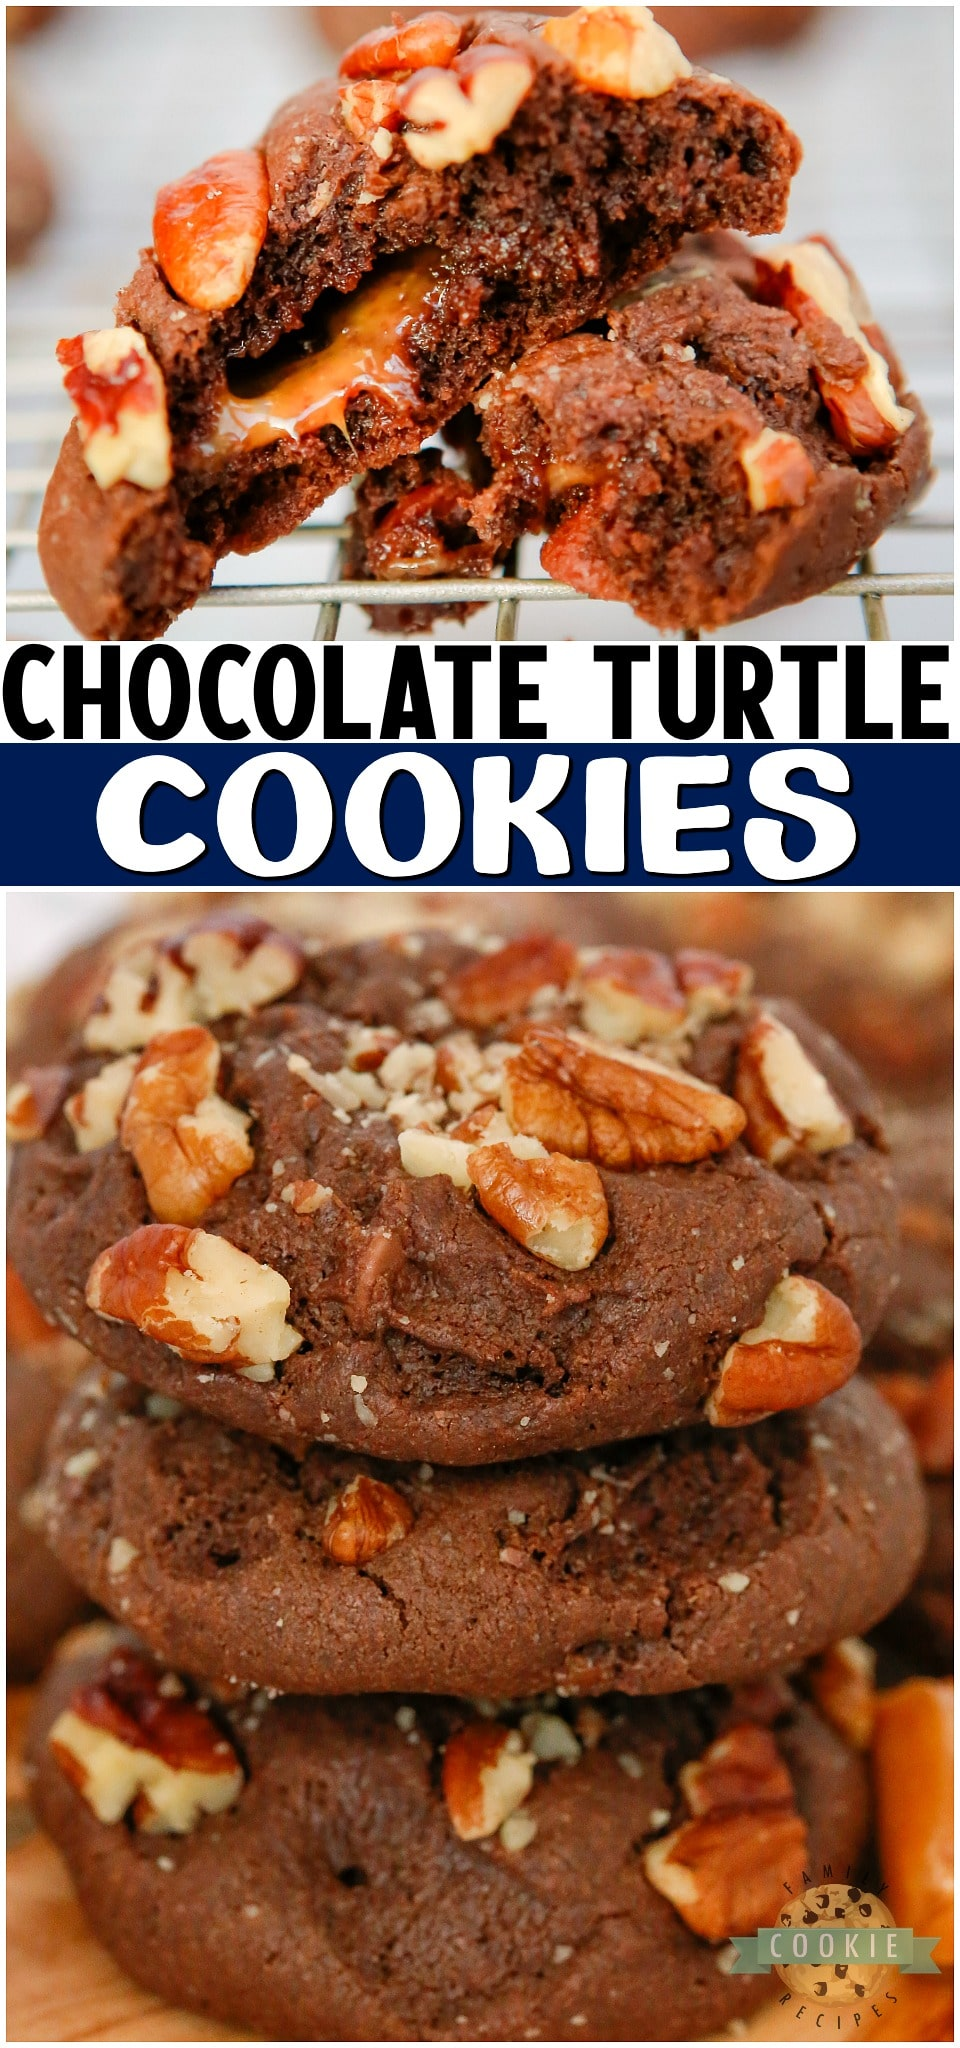 Chocolate Turtle Cookies are double chocolate chip cookies stuffed with caramel & pecans! Decadent Turtle Cookie recipe that everyone loves! #cookies #chocolate #caramel #pecan #turtles #baking #dessert #easyrecipe from FAMILY COOKIE RECIPES via @buttergirls